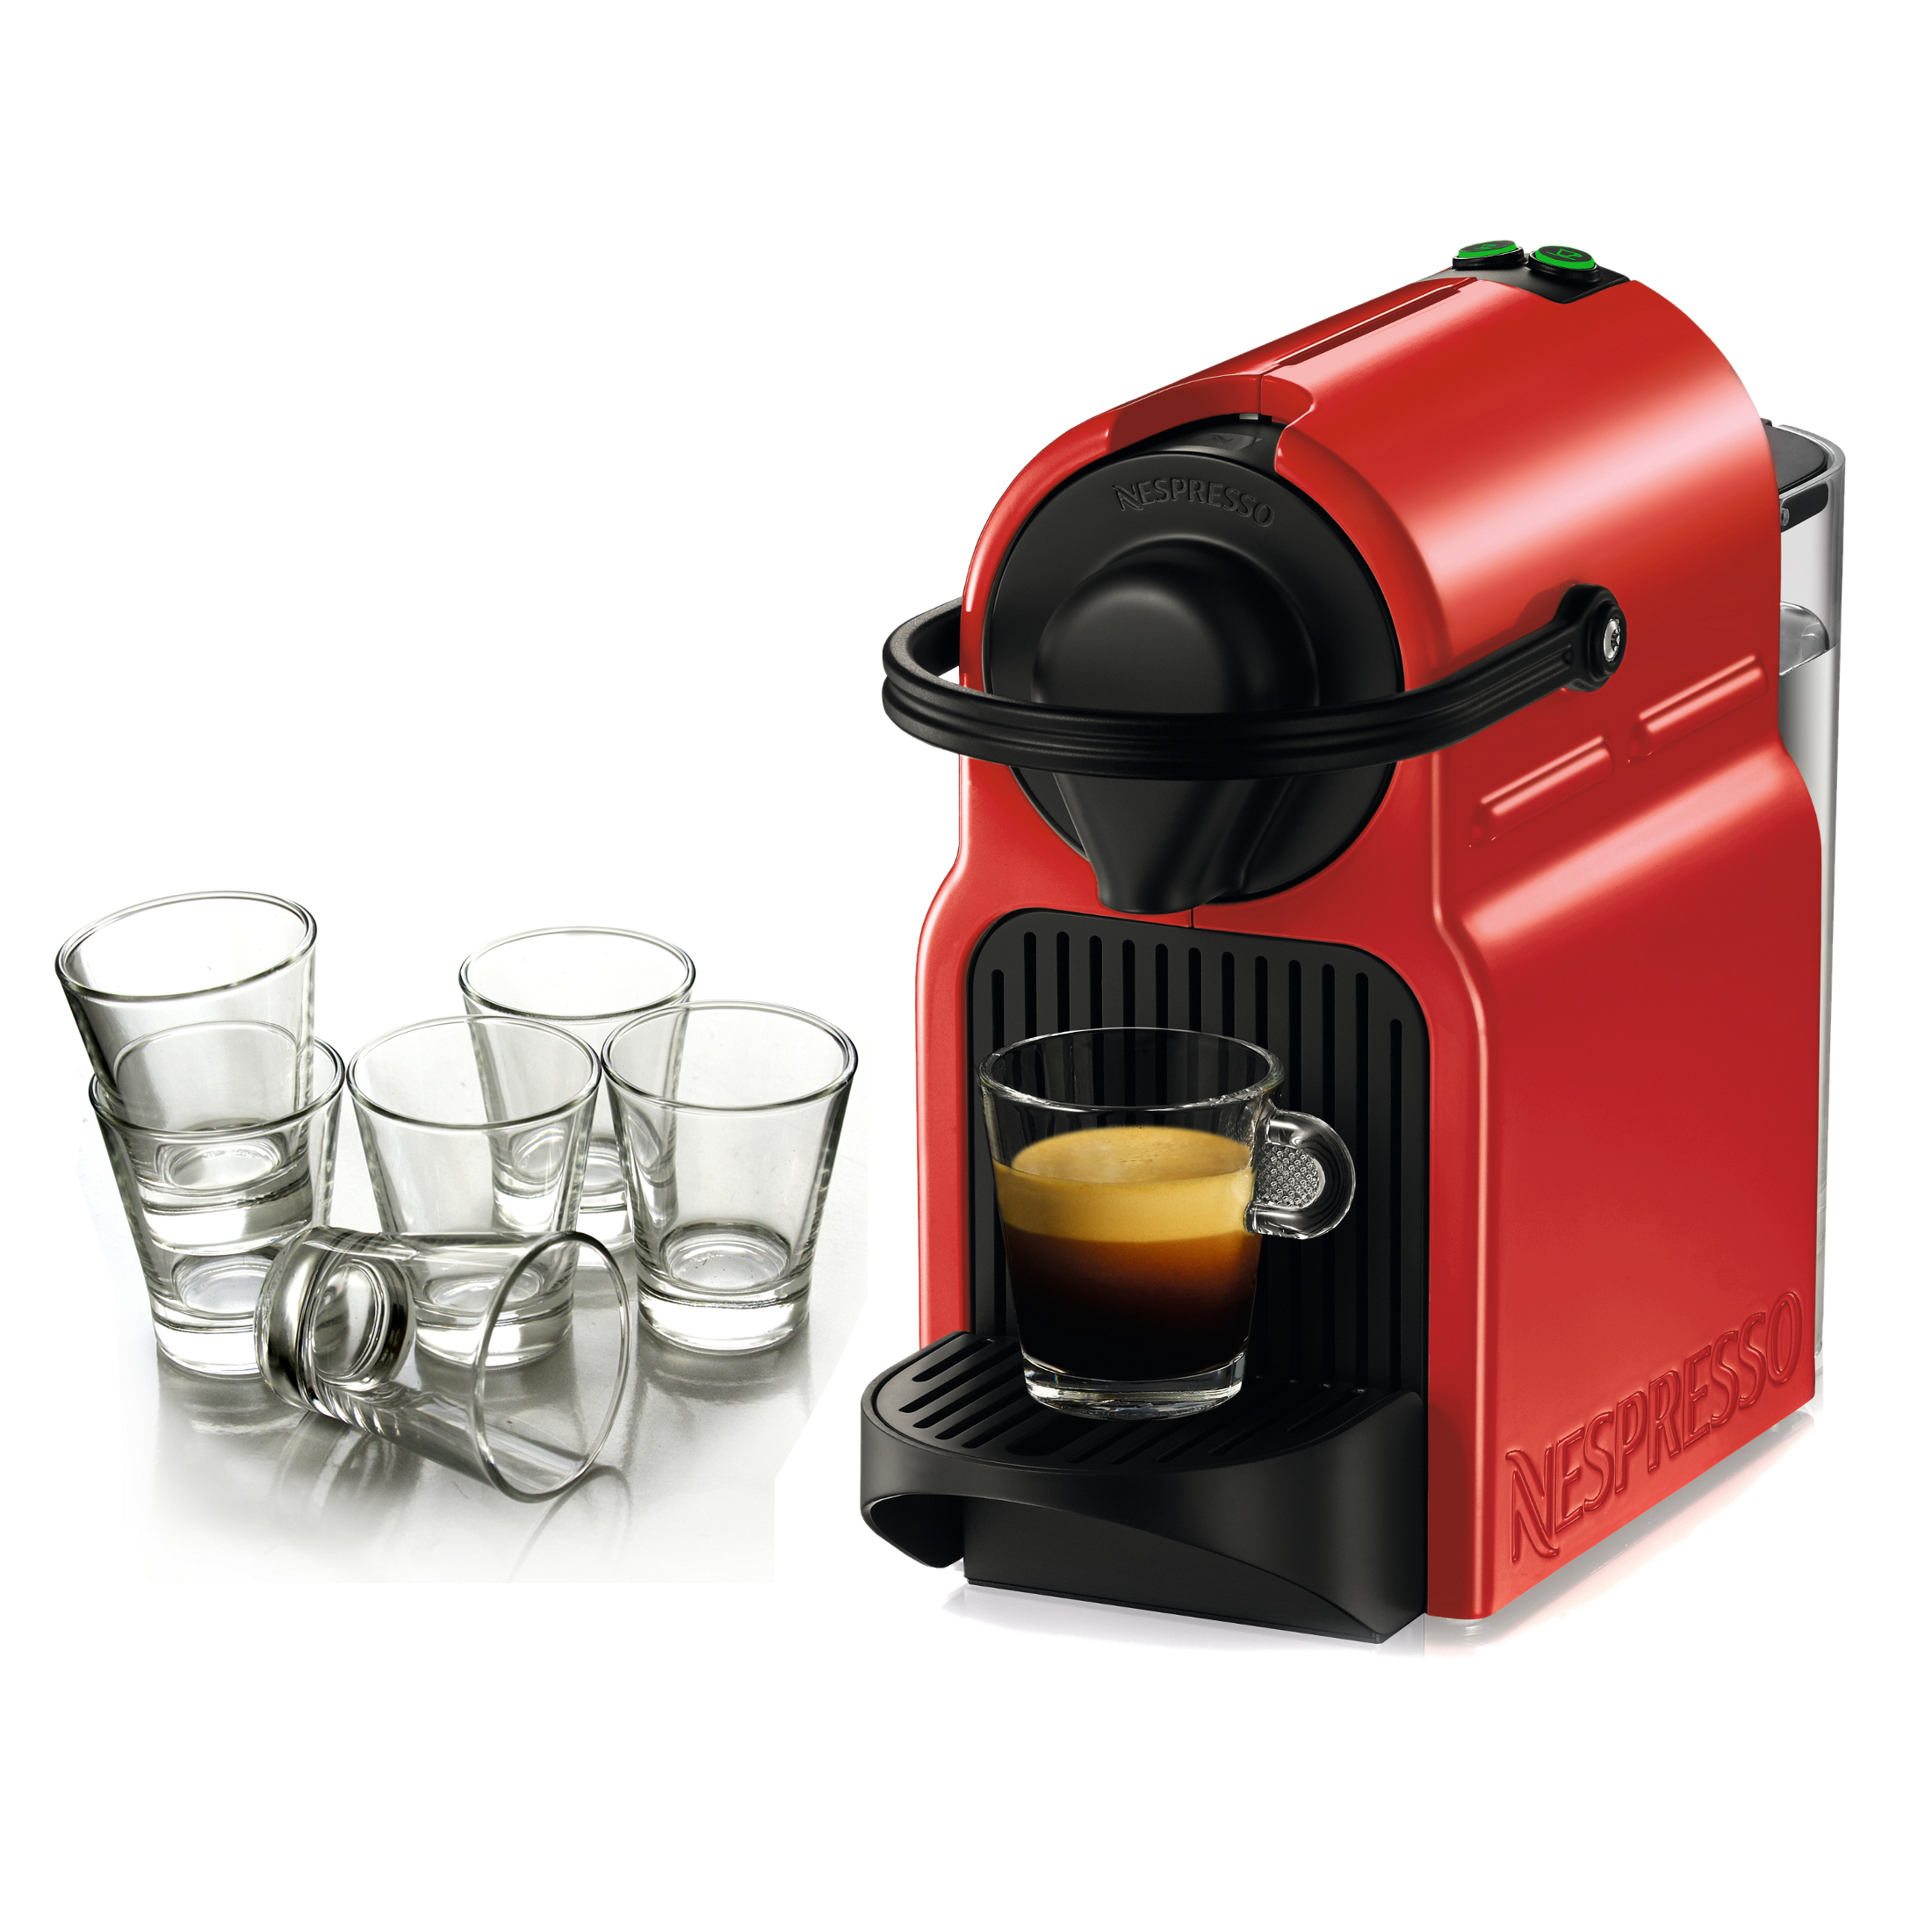 Nespresso Original Line Inissia Red Espresso Maker with Free Set of 6 Espresso Glasses